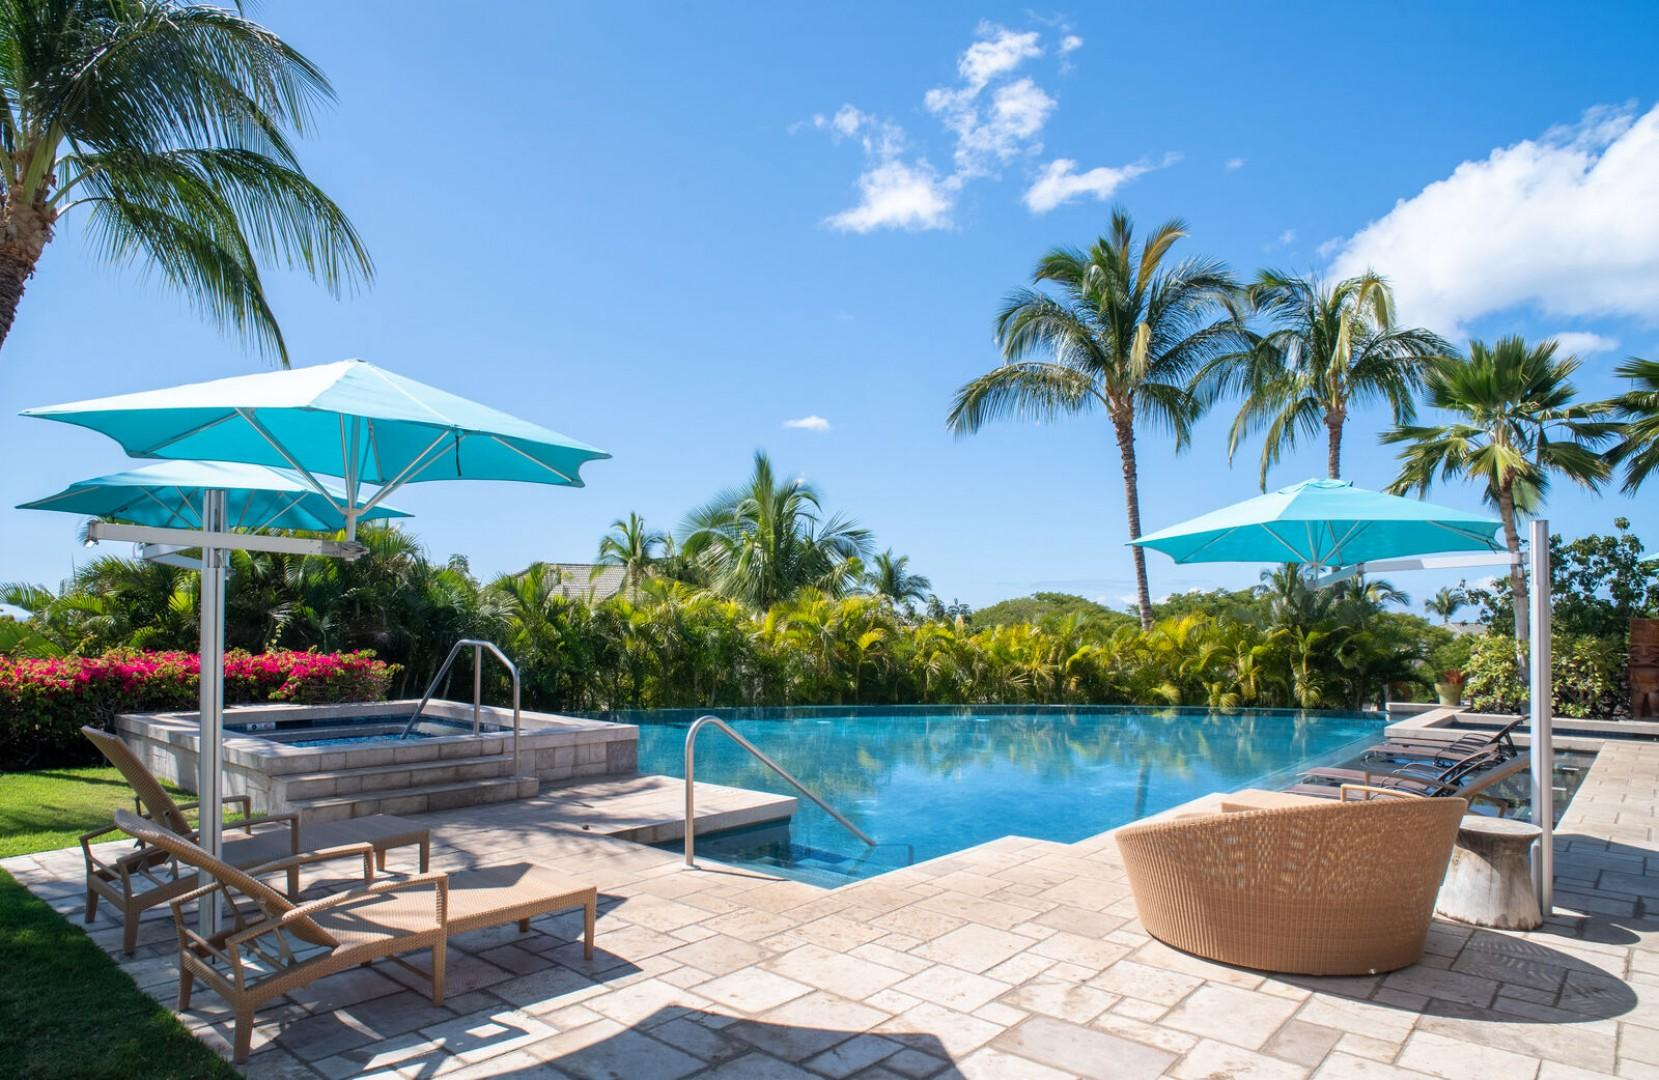 Wai'ula'ua Amenities Center: Rental comes with access to shared pool, jacuzzi and pool deck with chaise loungers.